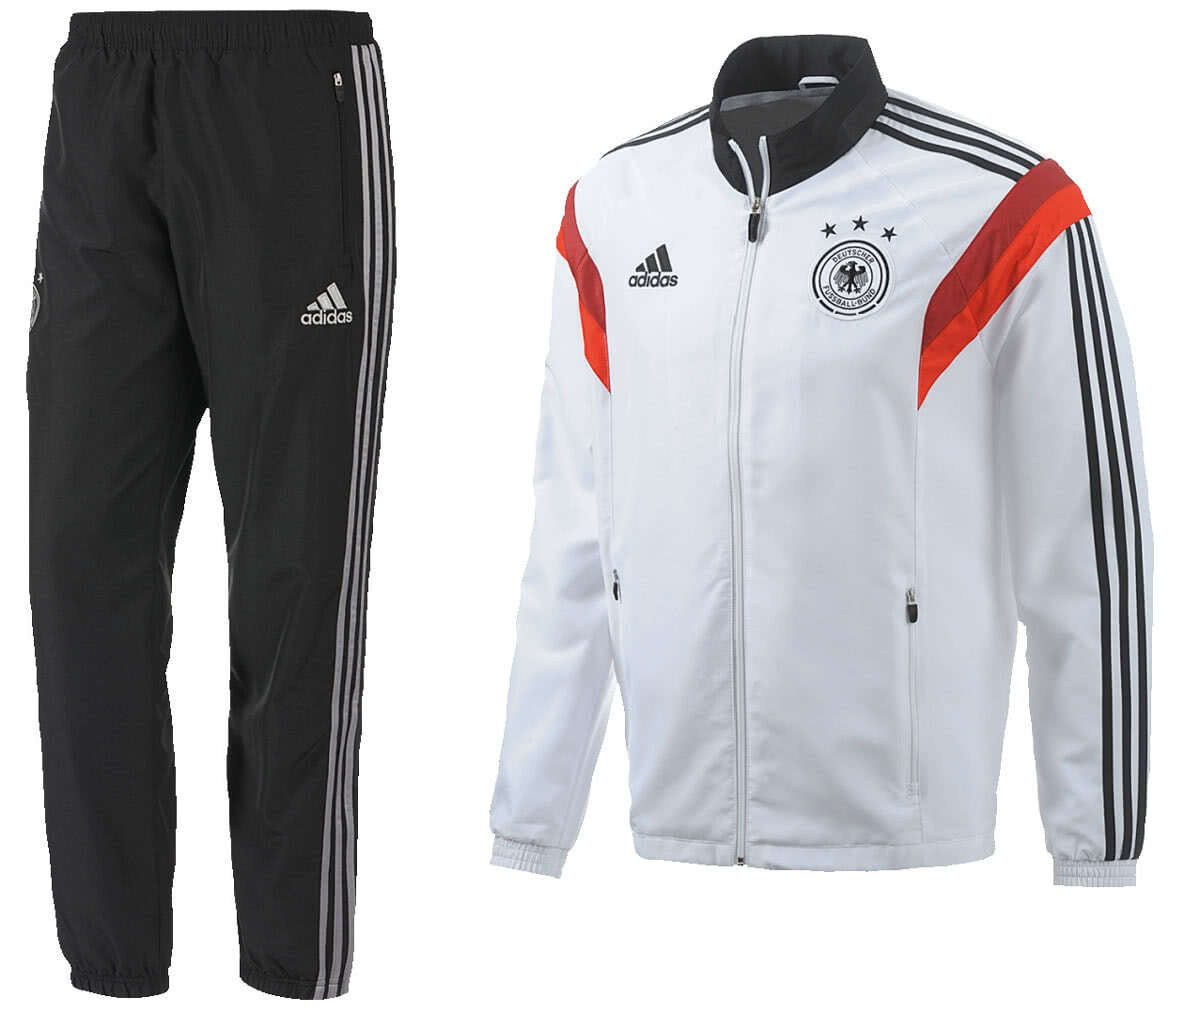 adidas condivo 14 pr sentationsanzug der dfb. Black Bedroom Furniture Sets. Home Design Ideas